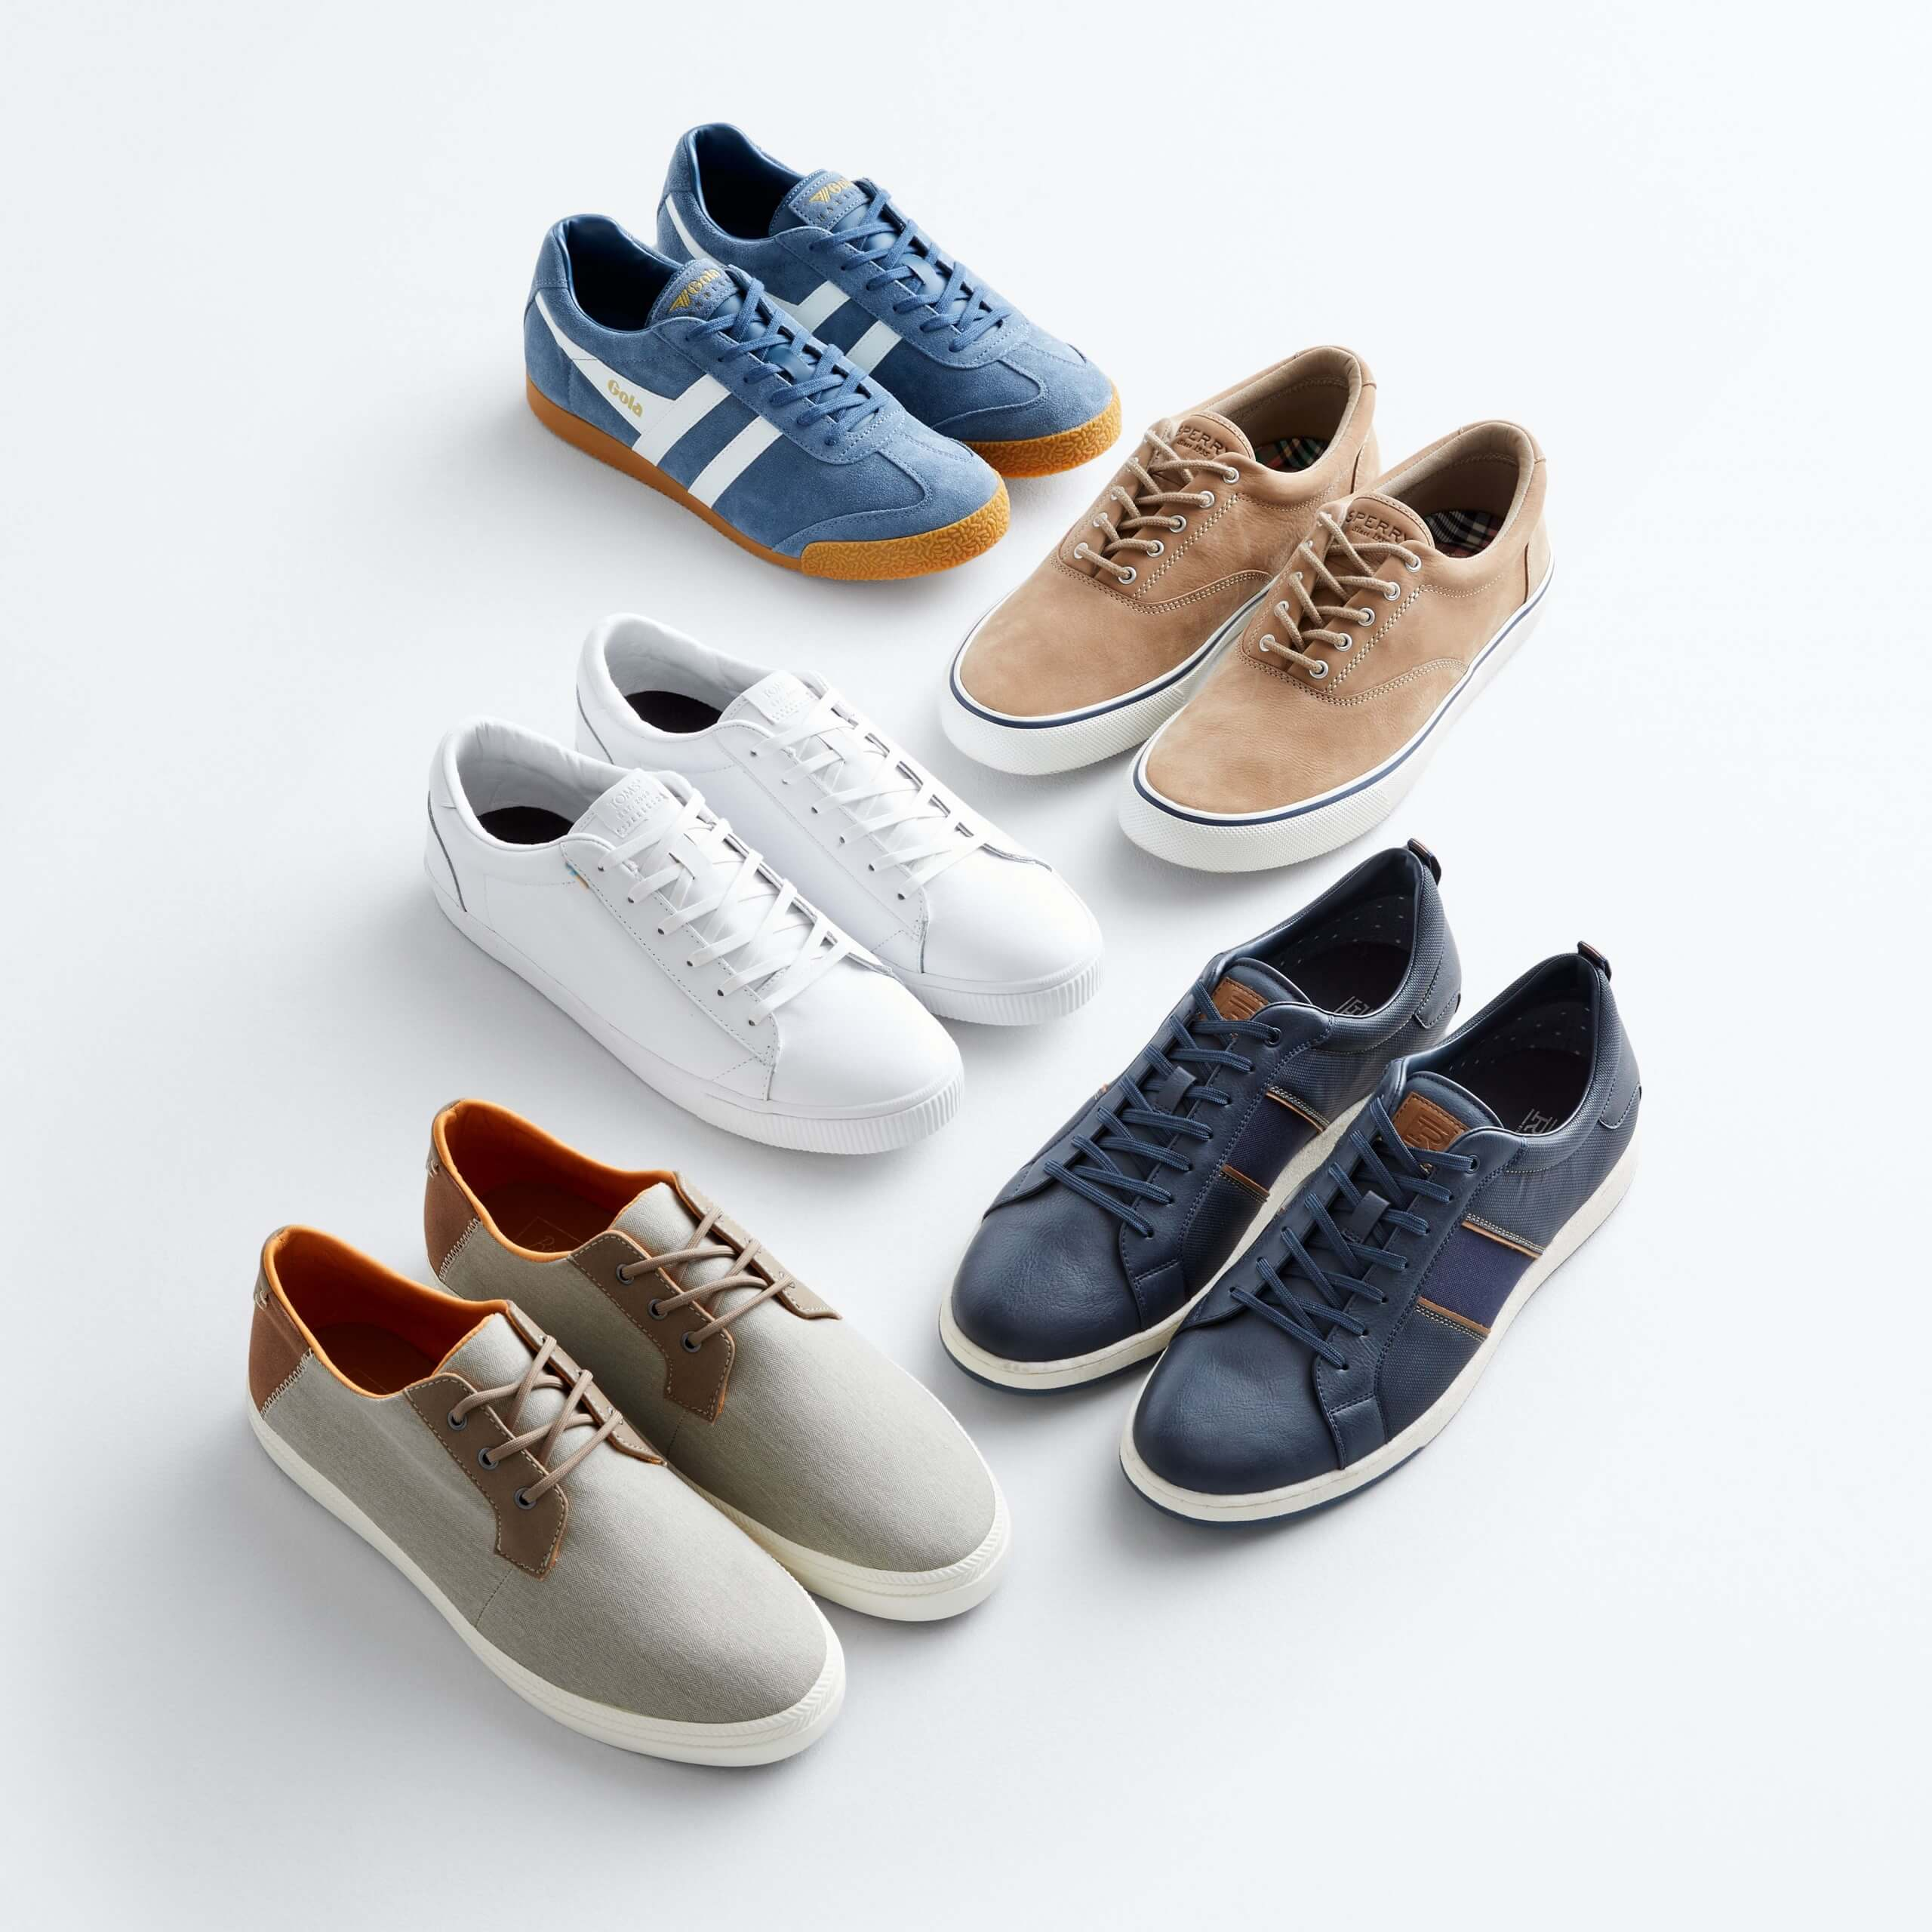 Stitch Fix Men's outfit laydown featuring sneakers in blue, tan, white, navy and grey.